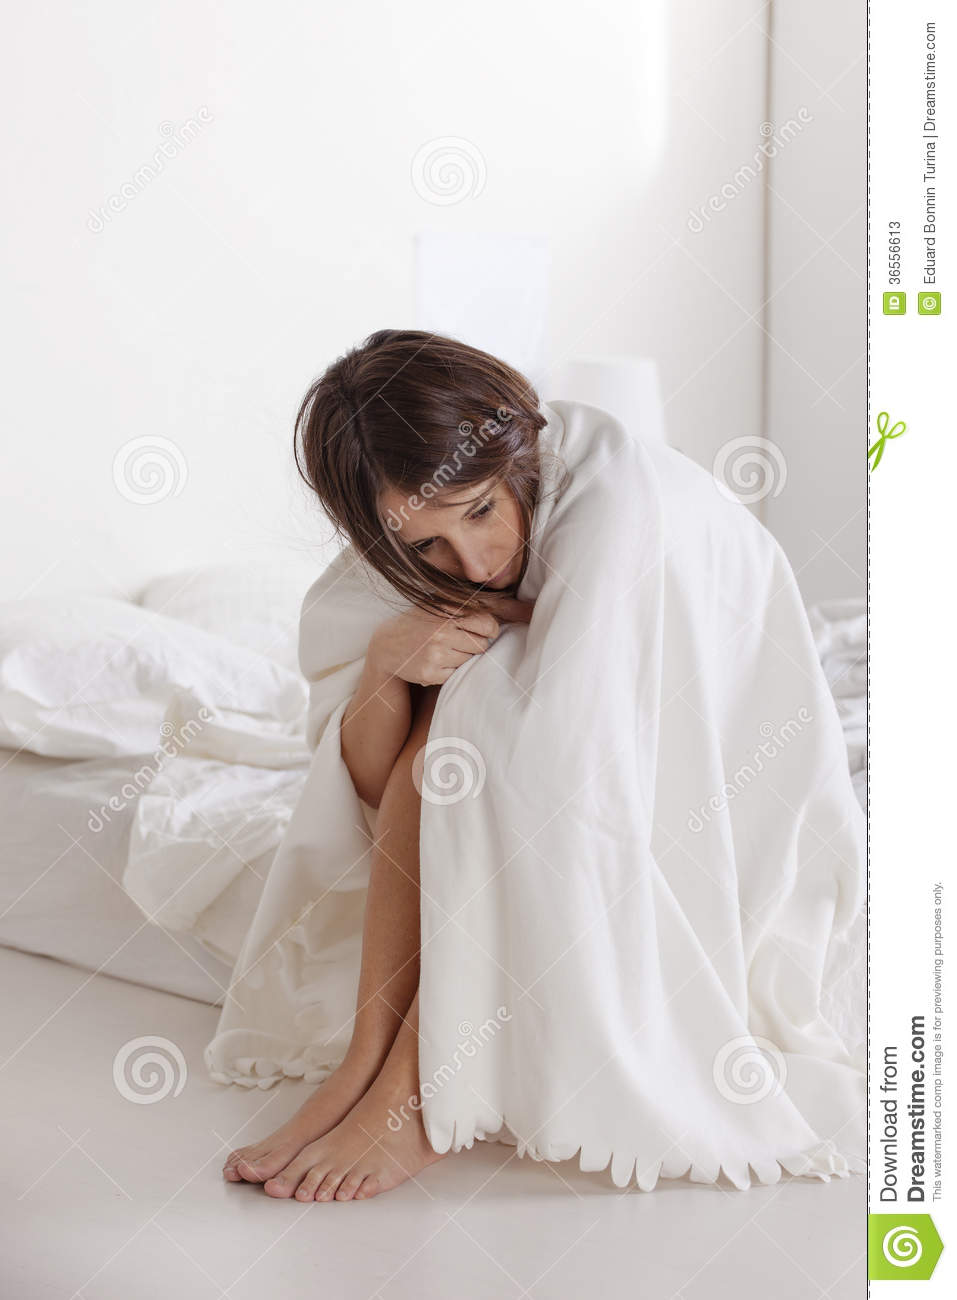 Thoughtful young woman sitting on white bed.